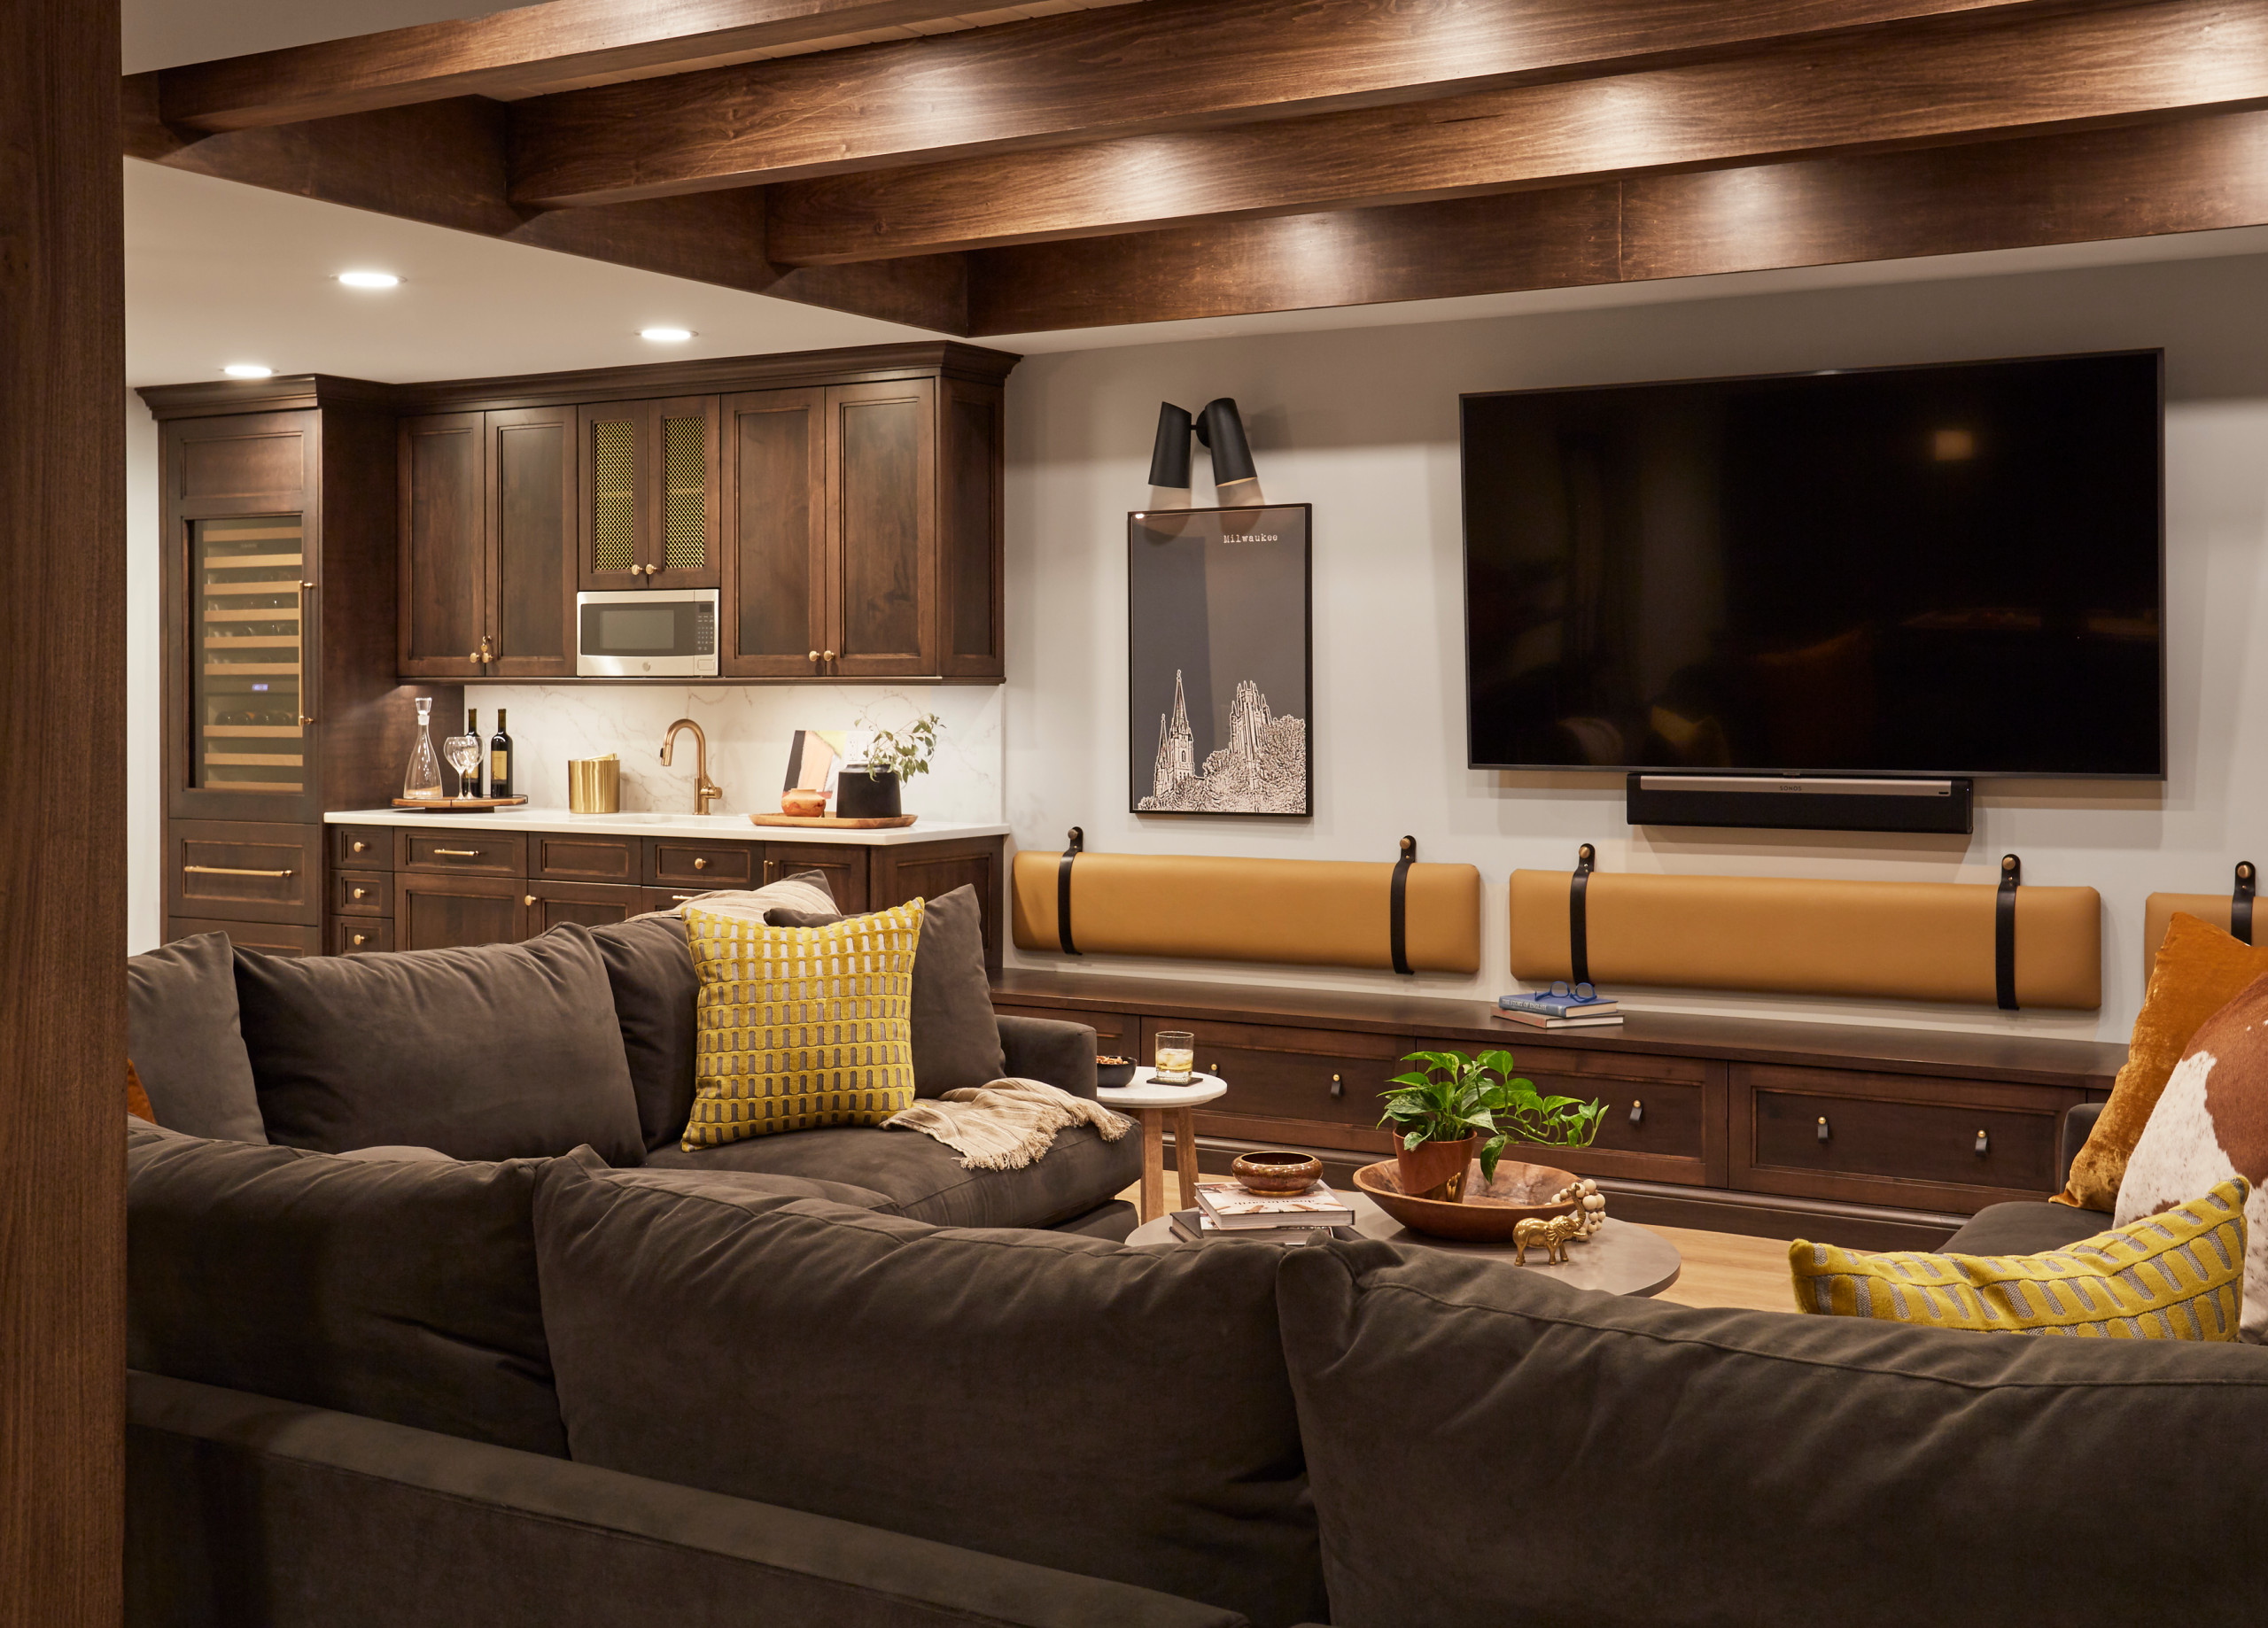 Image of: 75 Beautiful Exposed Beam Basement Pictures Ideas November 2020 Houzz